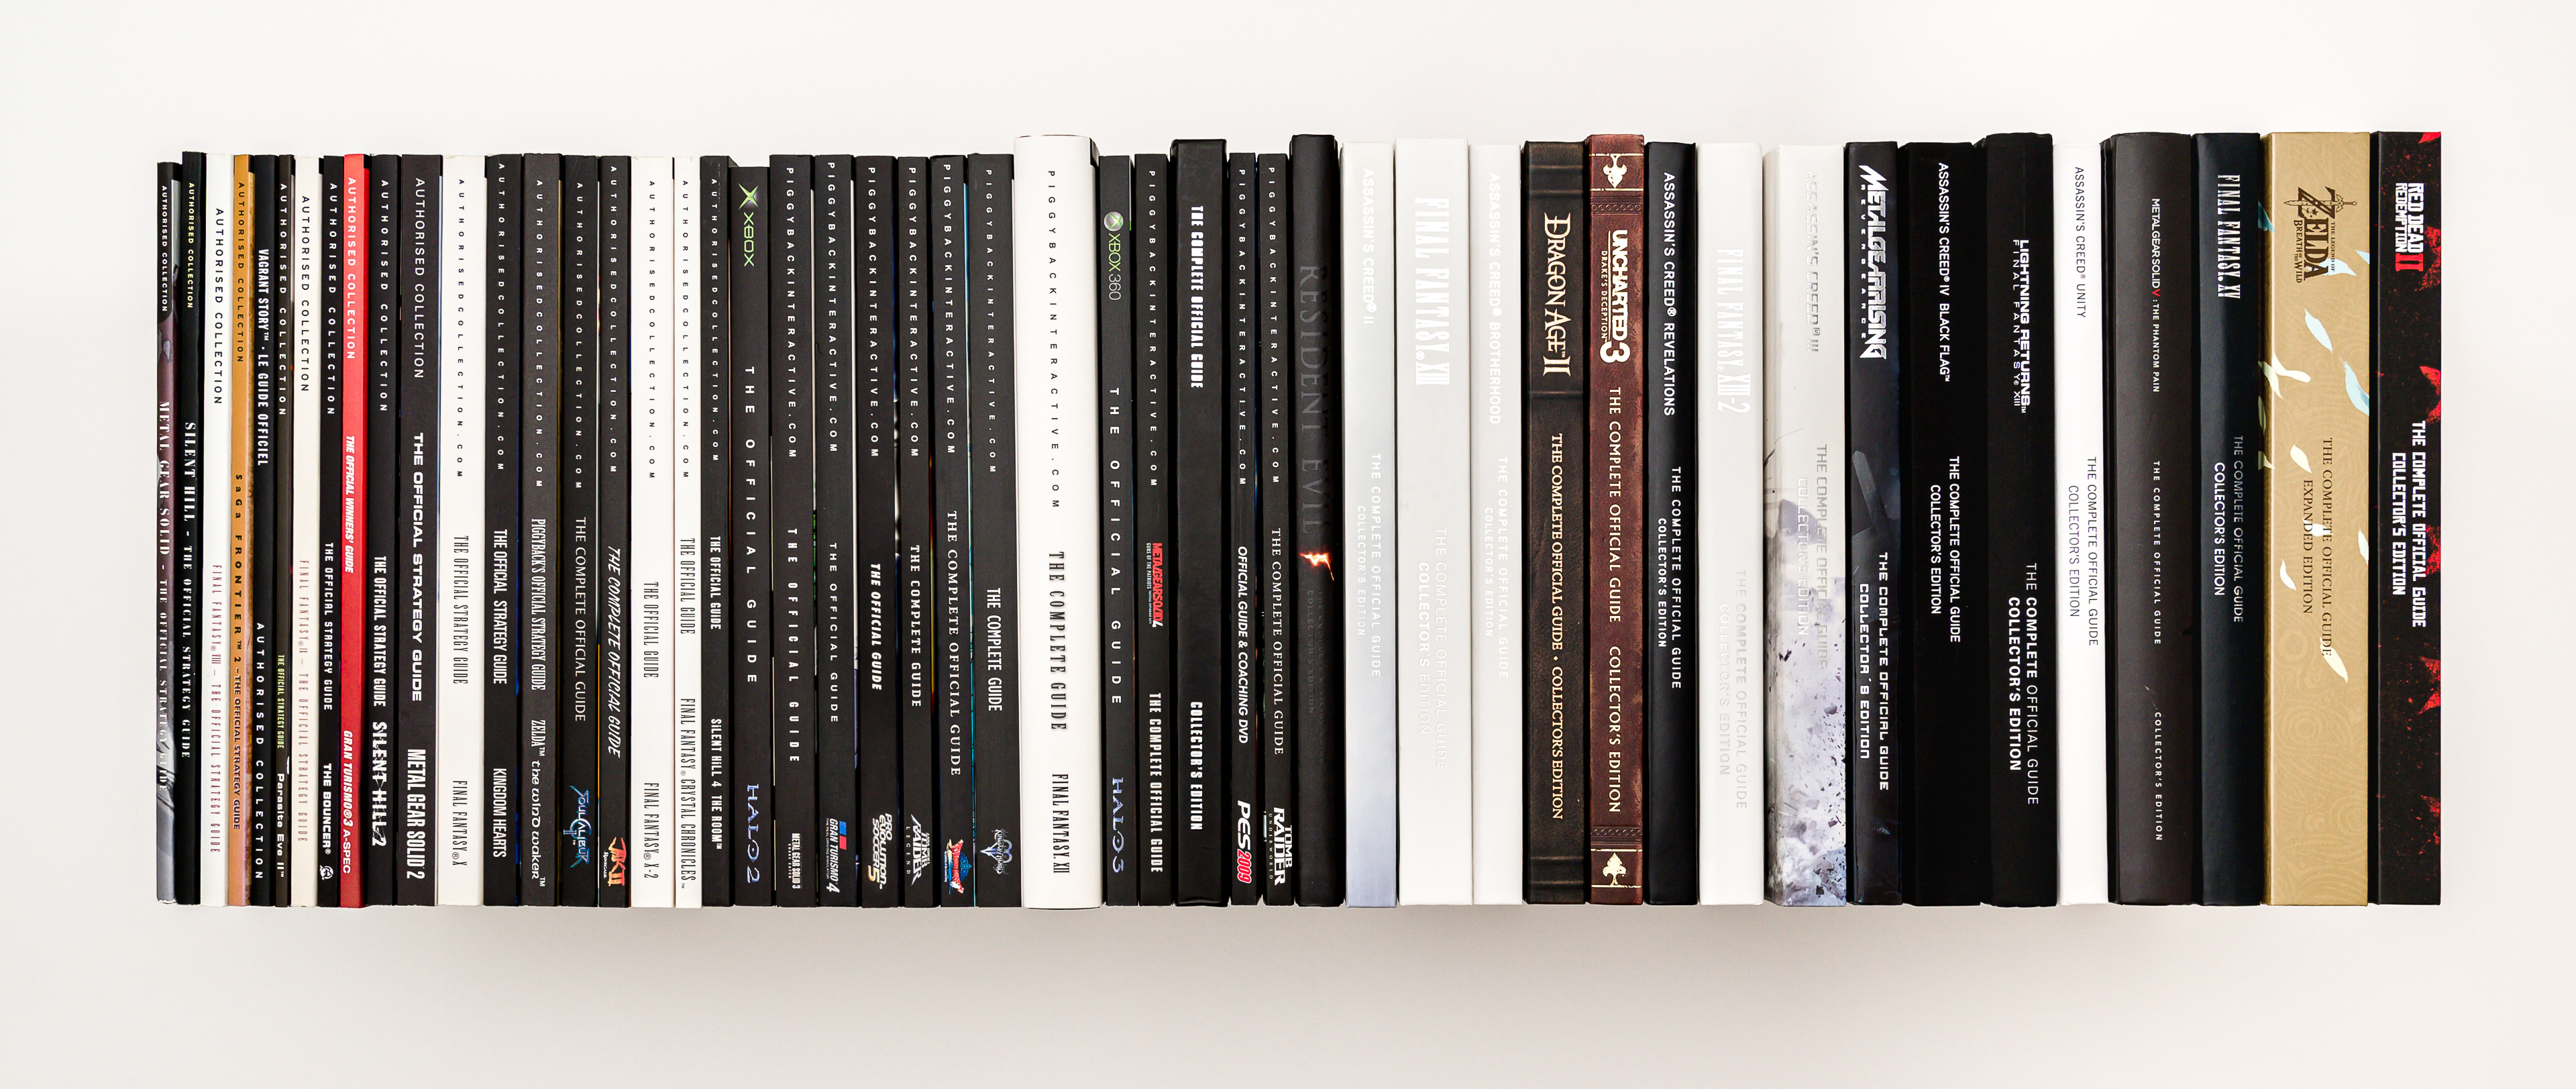 BANNER_GUIDE-SPINES-1